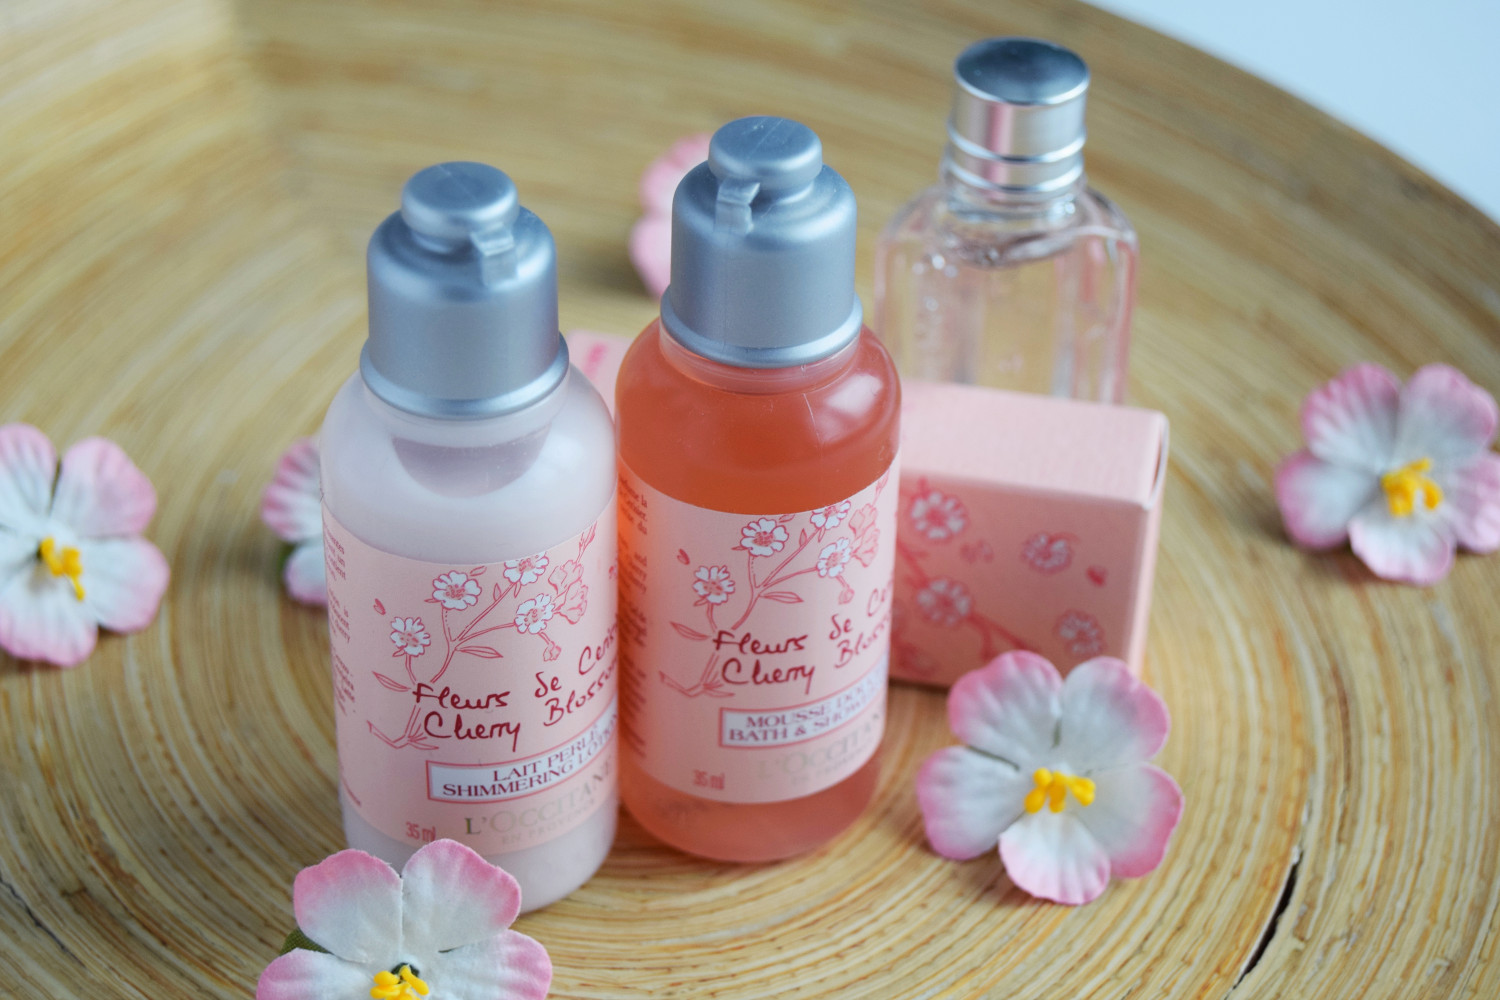 Cherry_blossom_L'Occitane_Zalabell_beauty_3